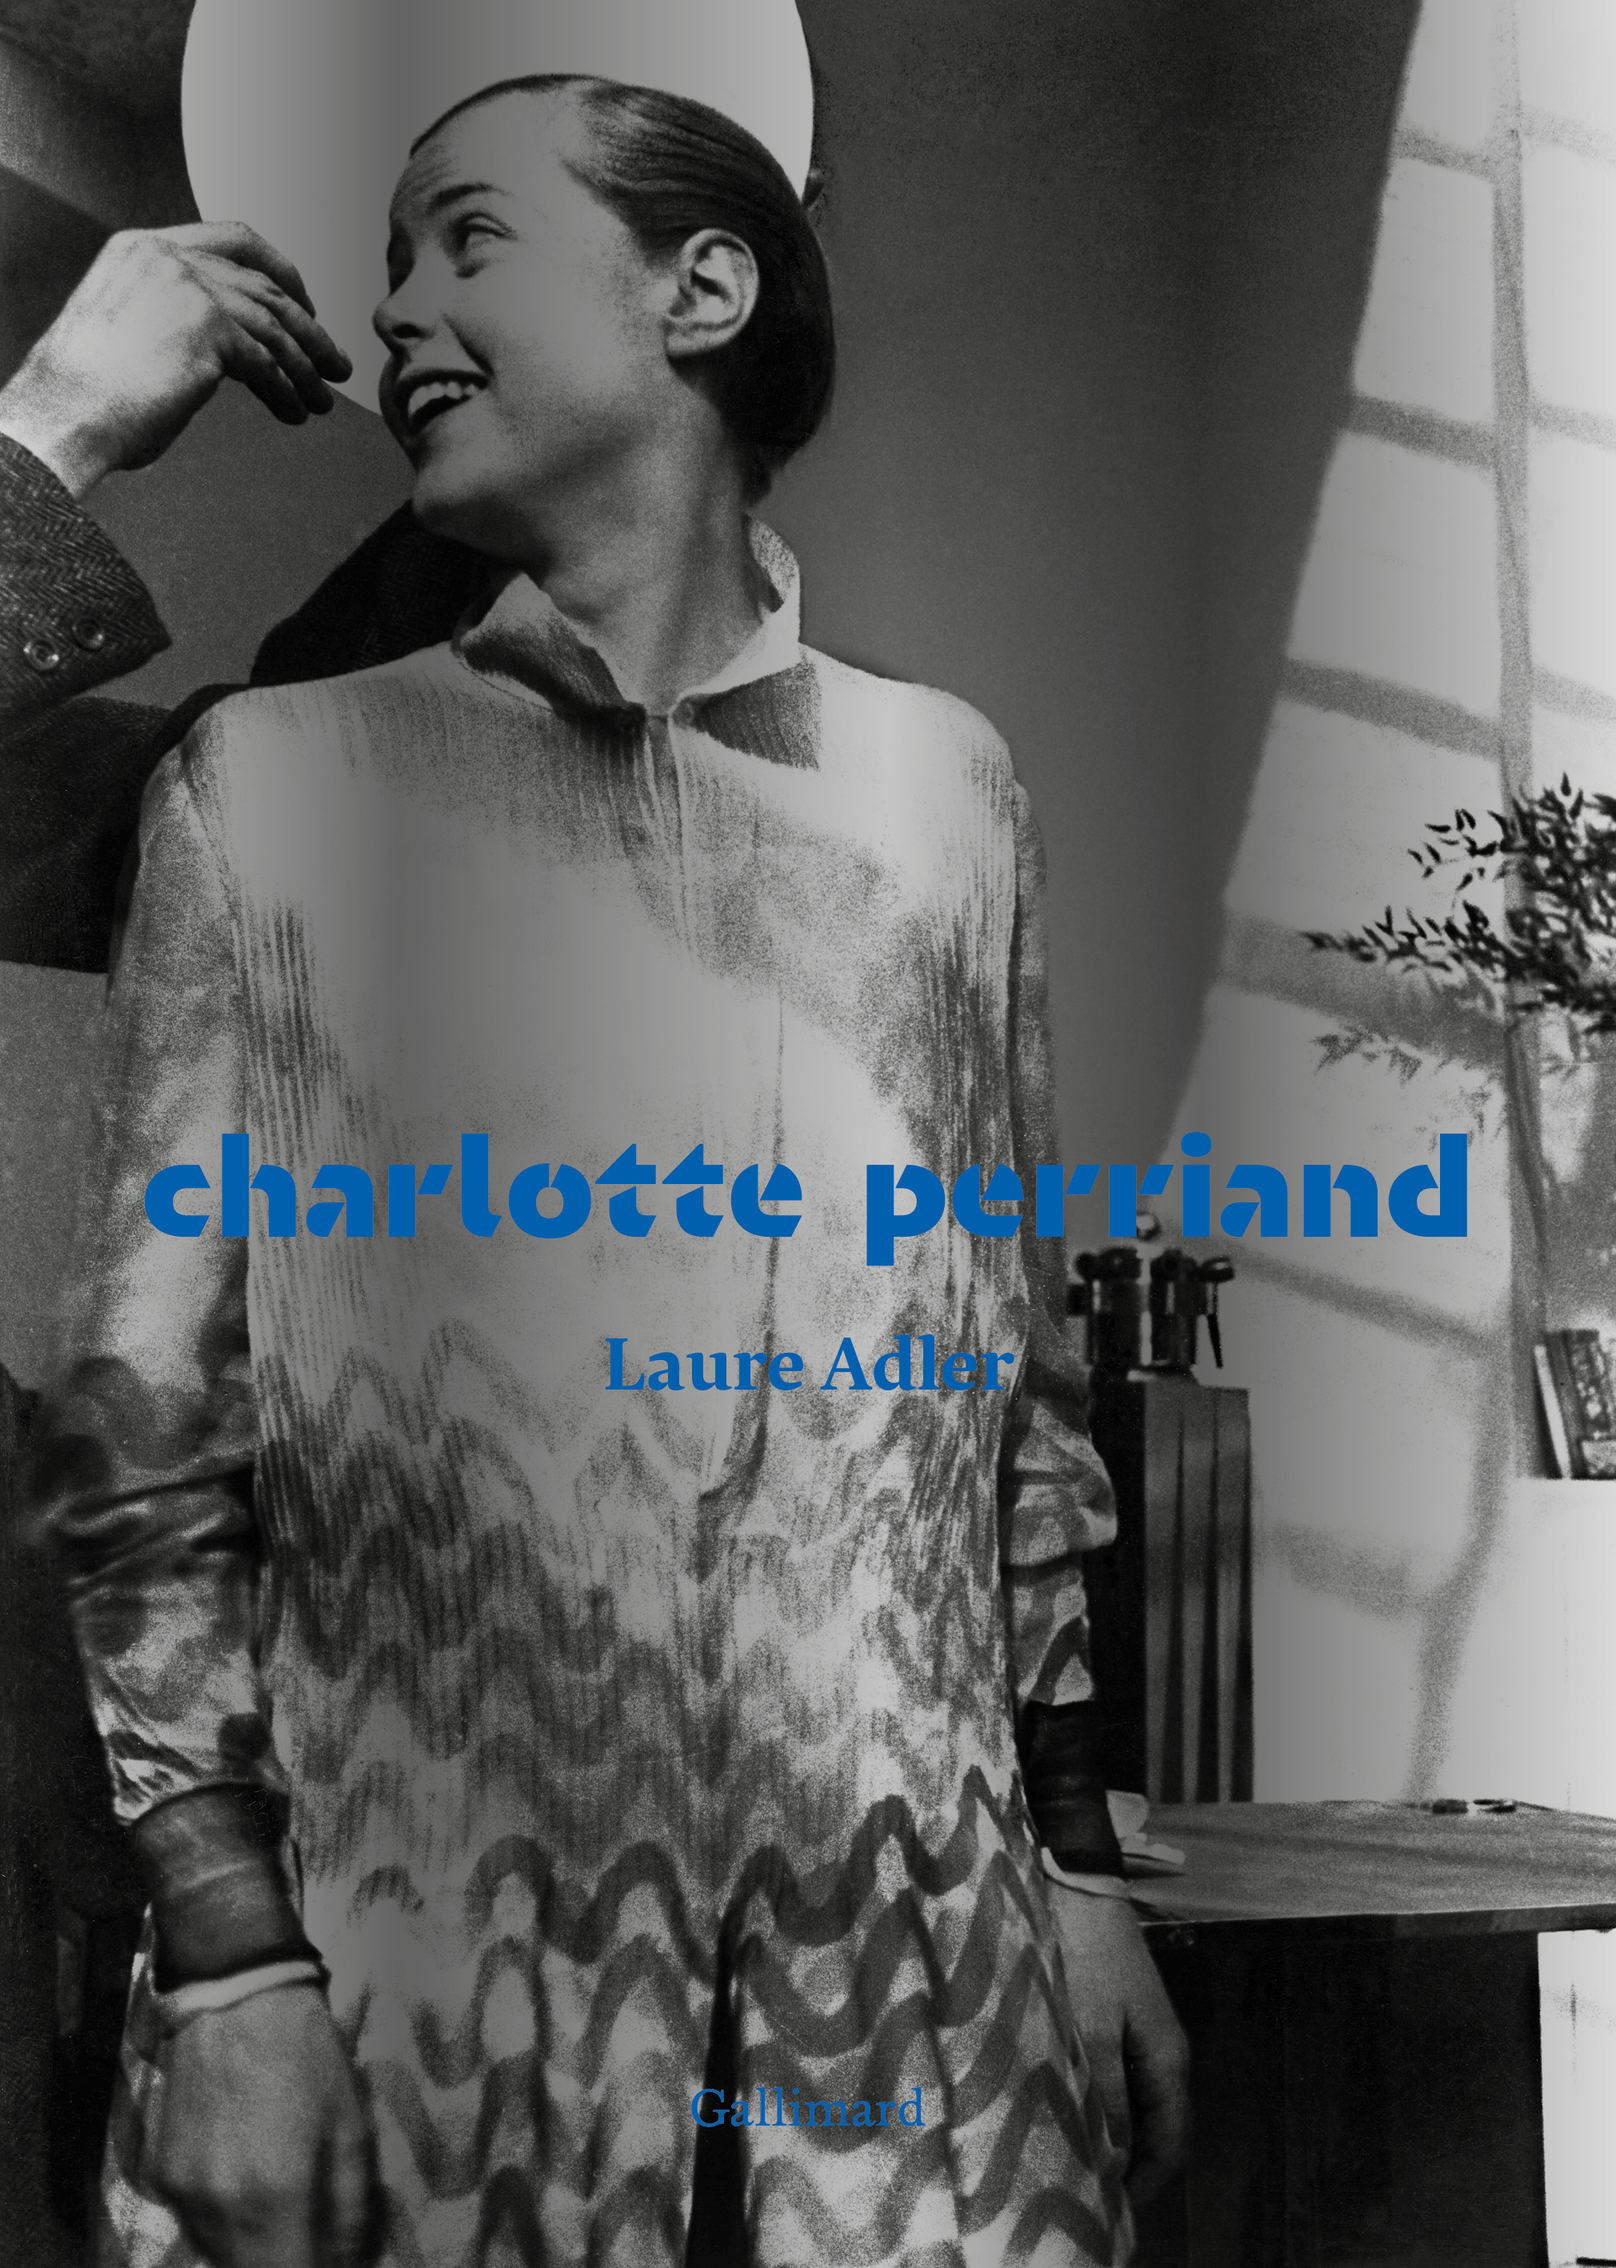 CharlottePerriand LaureAdler